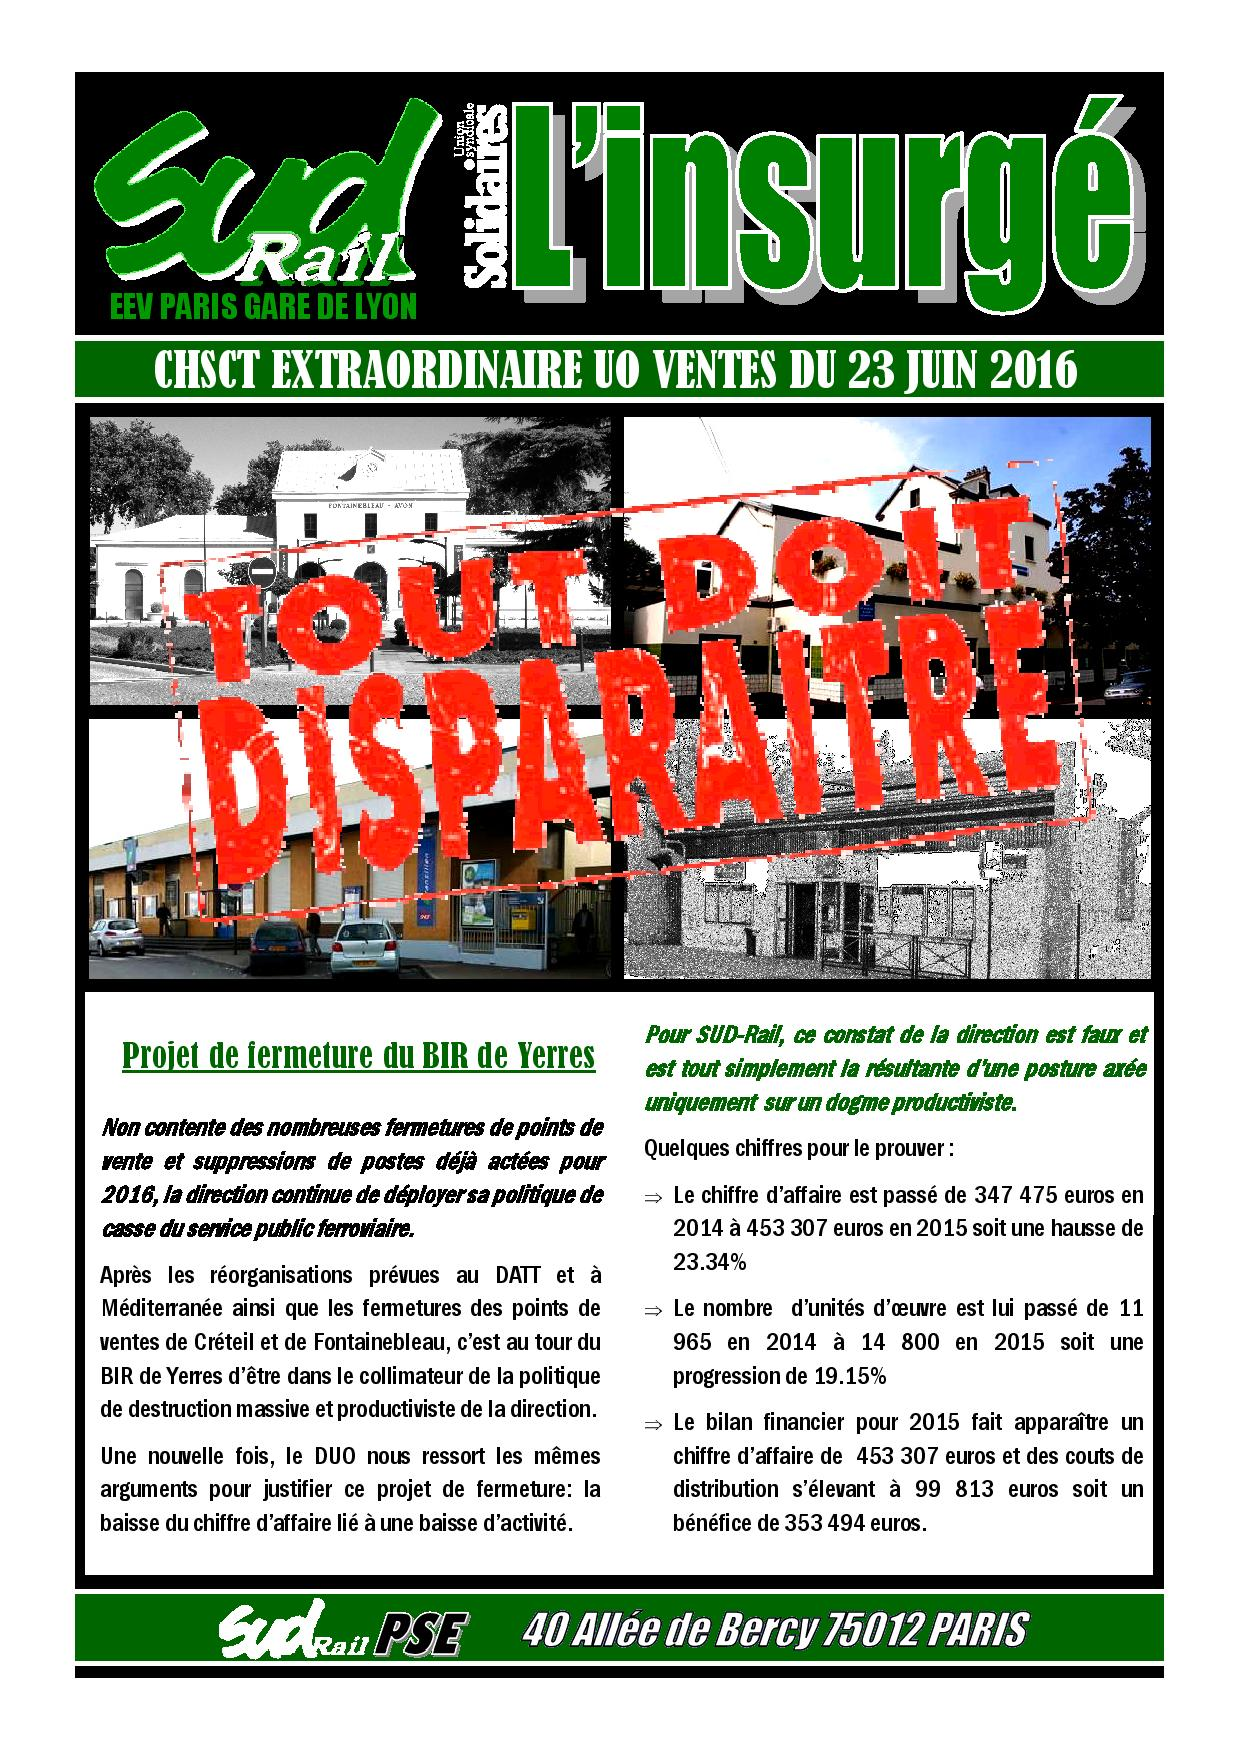 Insurge CHSCT extra UO Ventes 06-2016-page-001